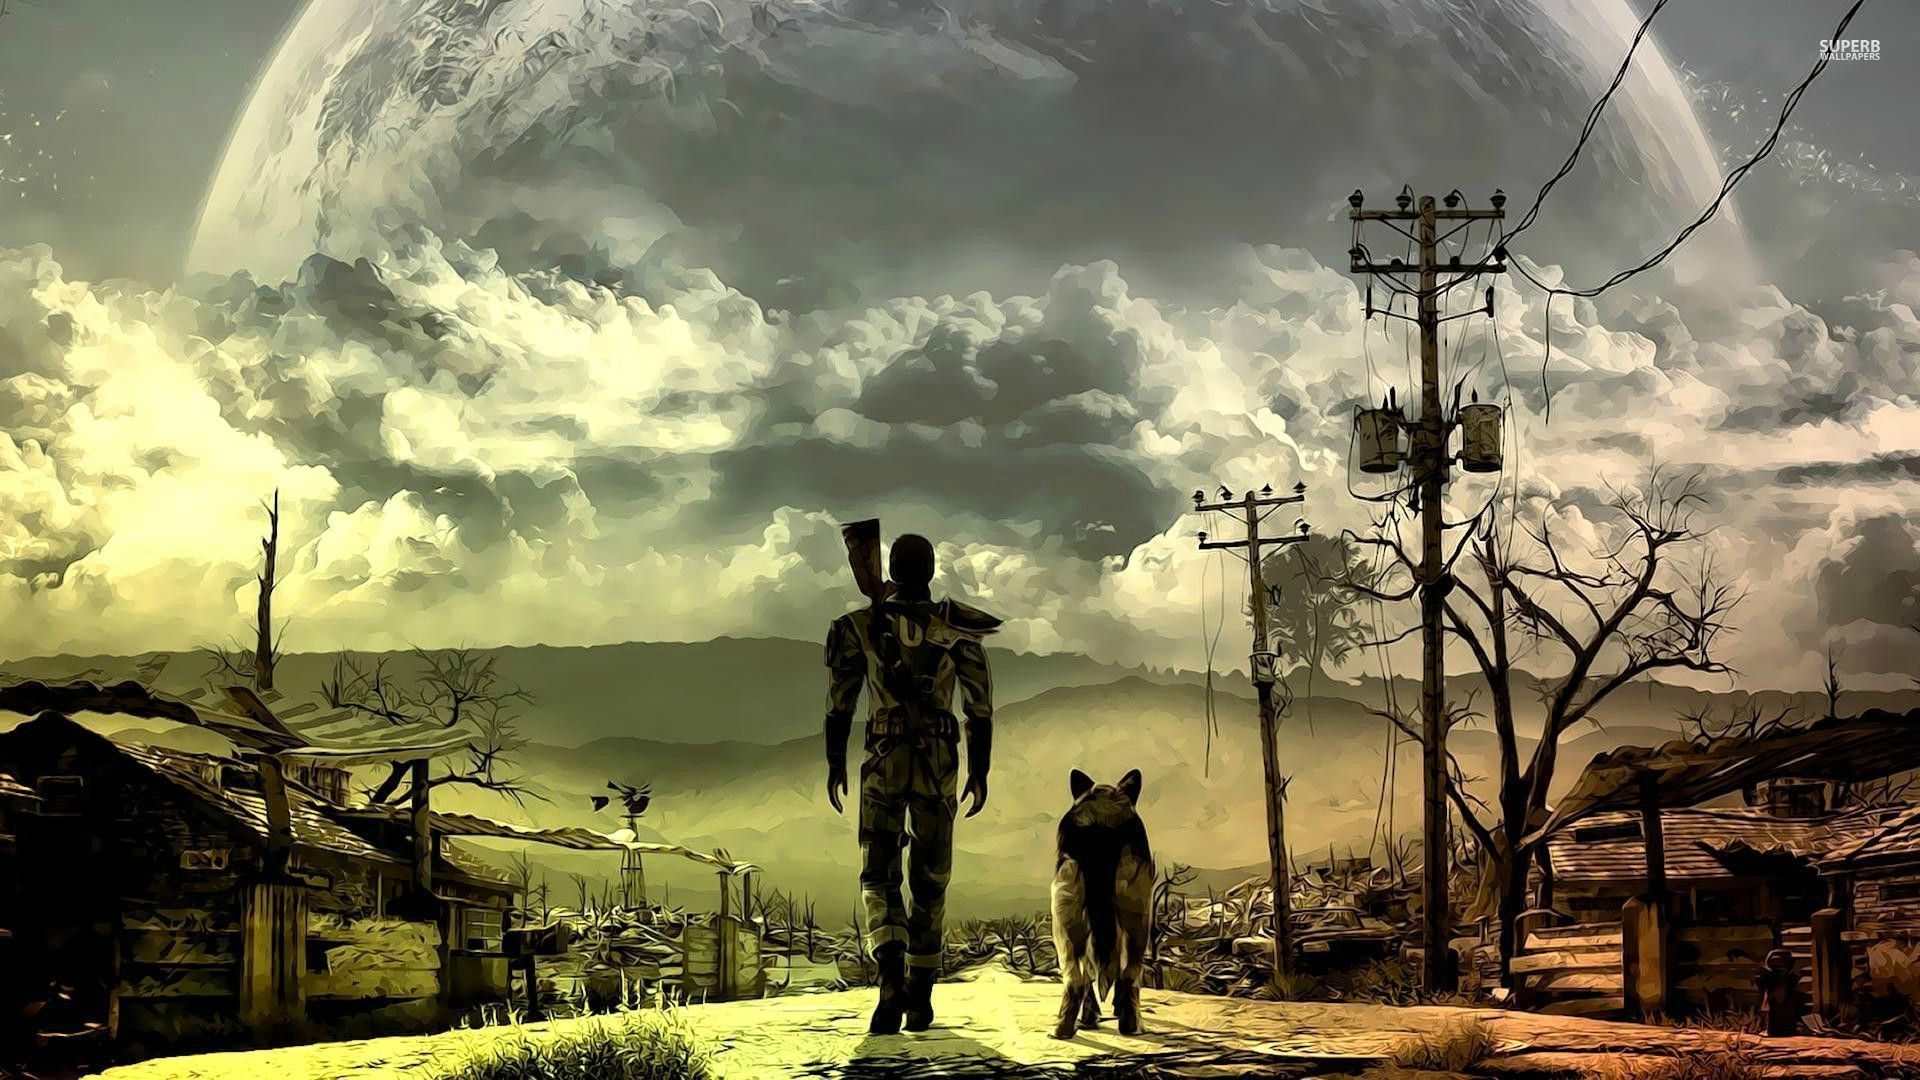 1920x1080 Fallout Wallpapers Wallpaper | HD Wallpapers | Pinterest | Fallout and  Wallpaper